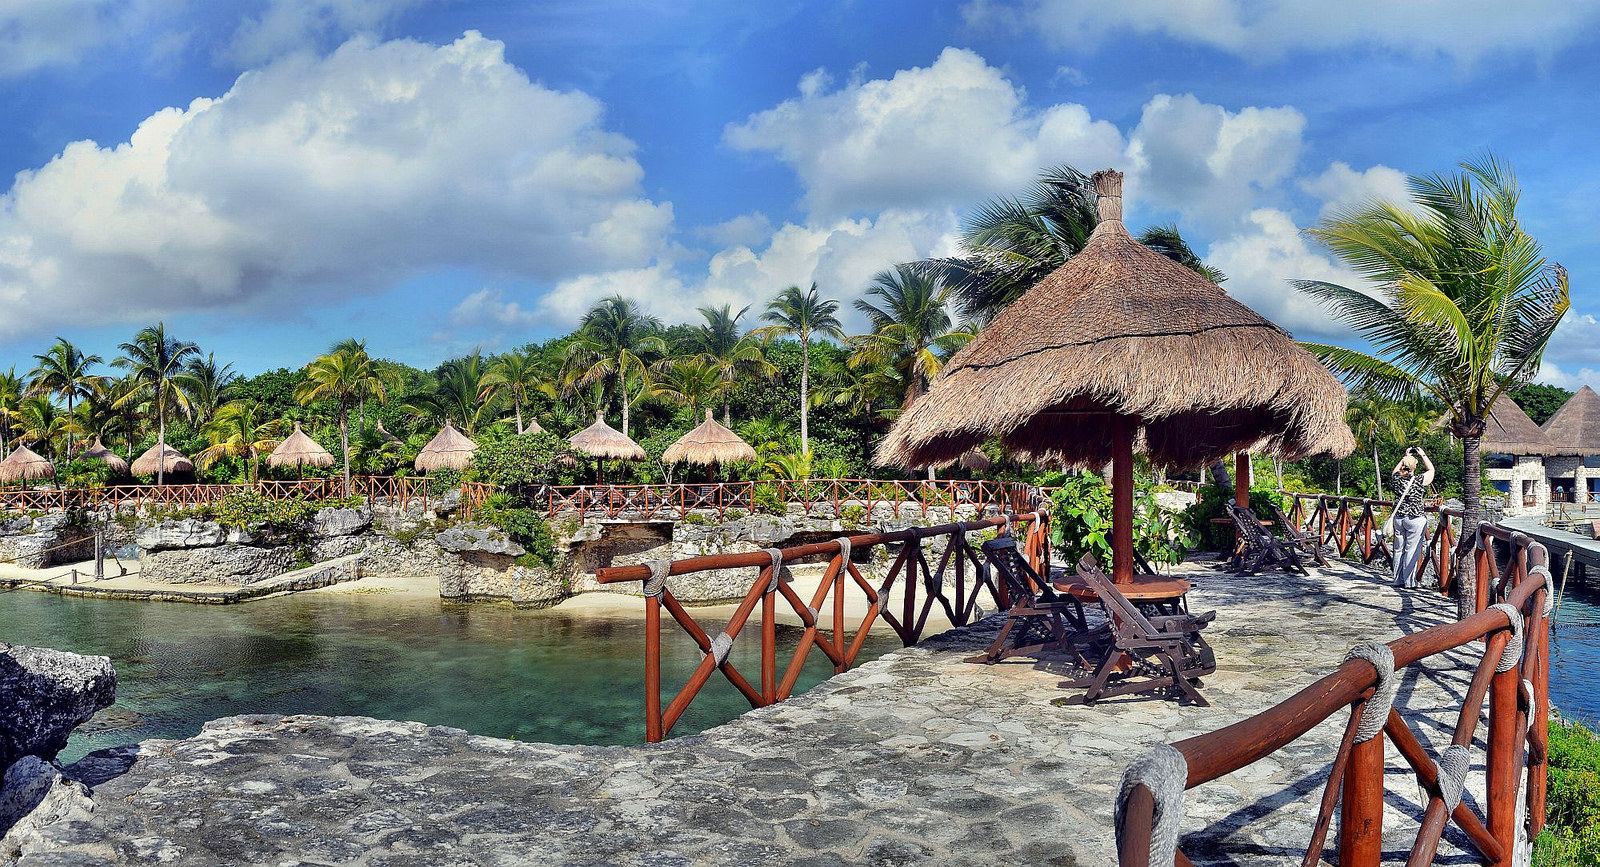 """Xcaret Panorama"" by Robert Pittman via Flickr Creative Commons"